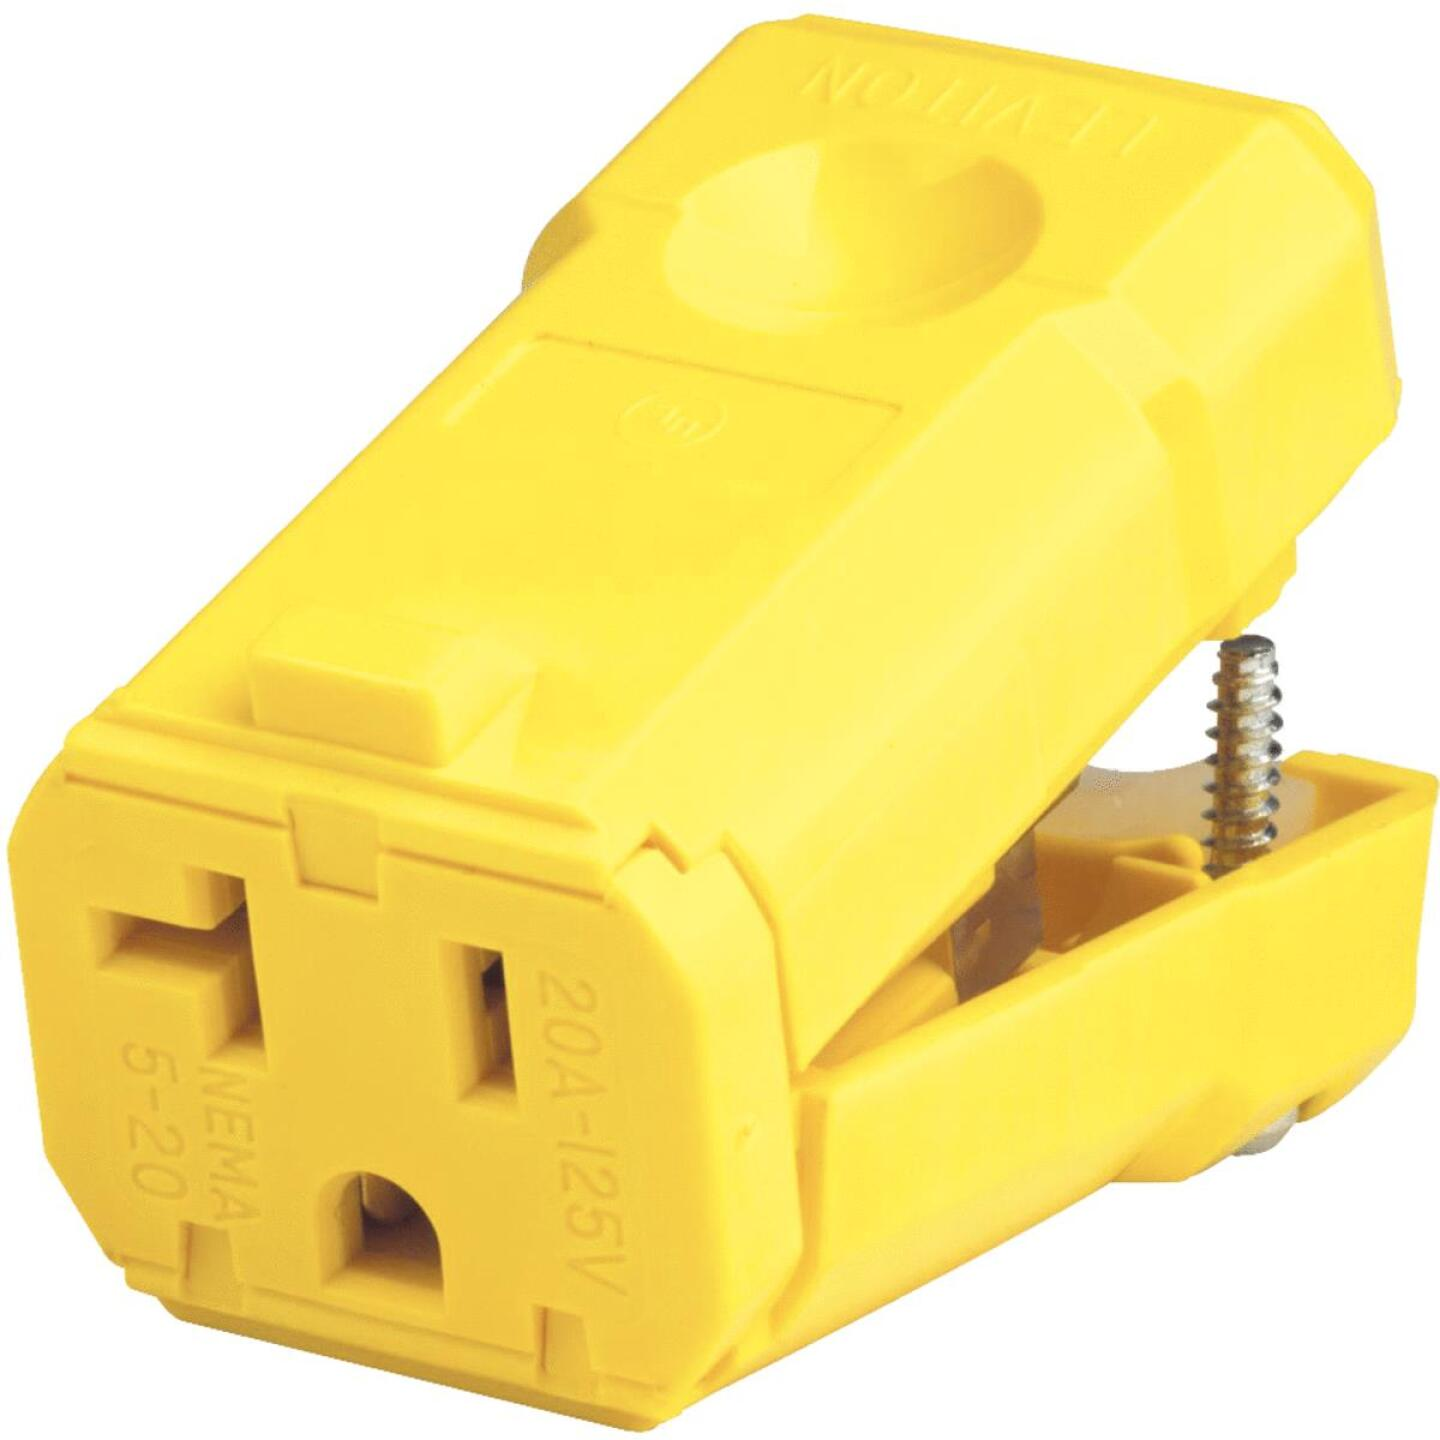 Leviton 20A 125V 3-Wire 2-Pole Python Cord Connector Image 2